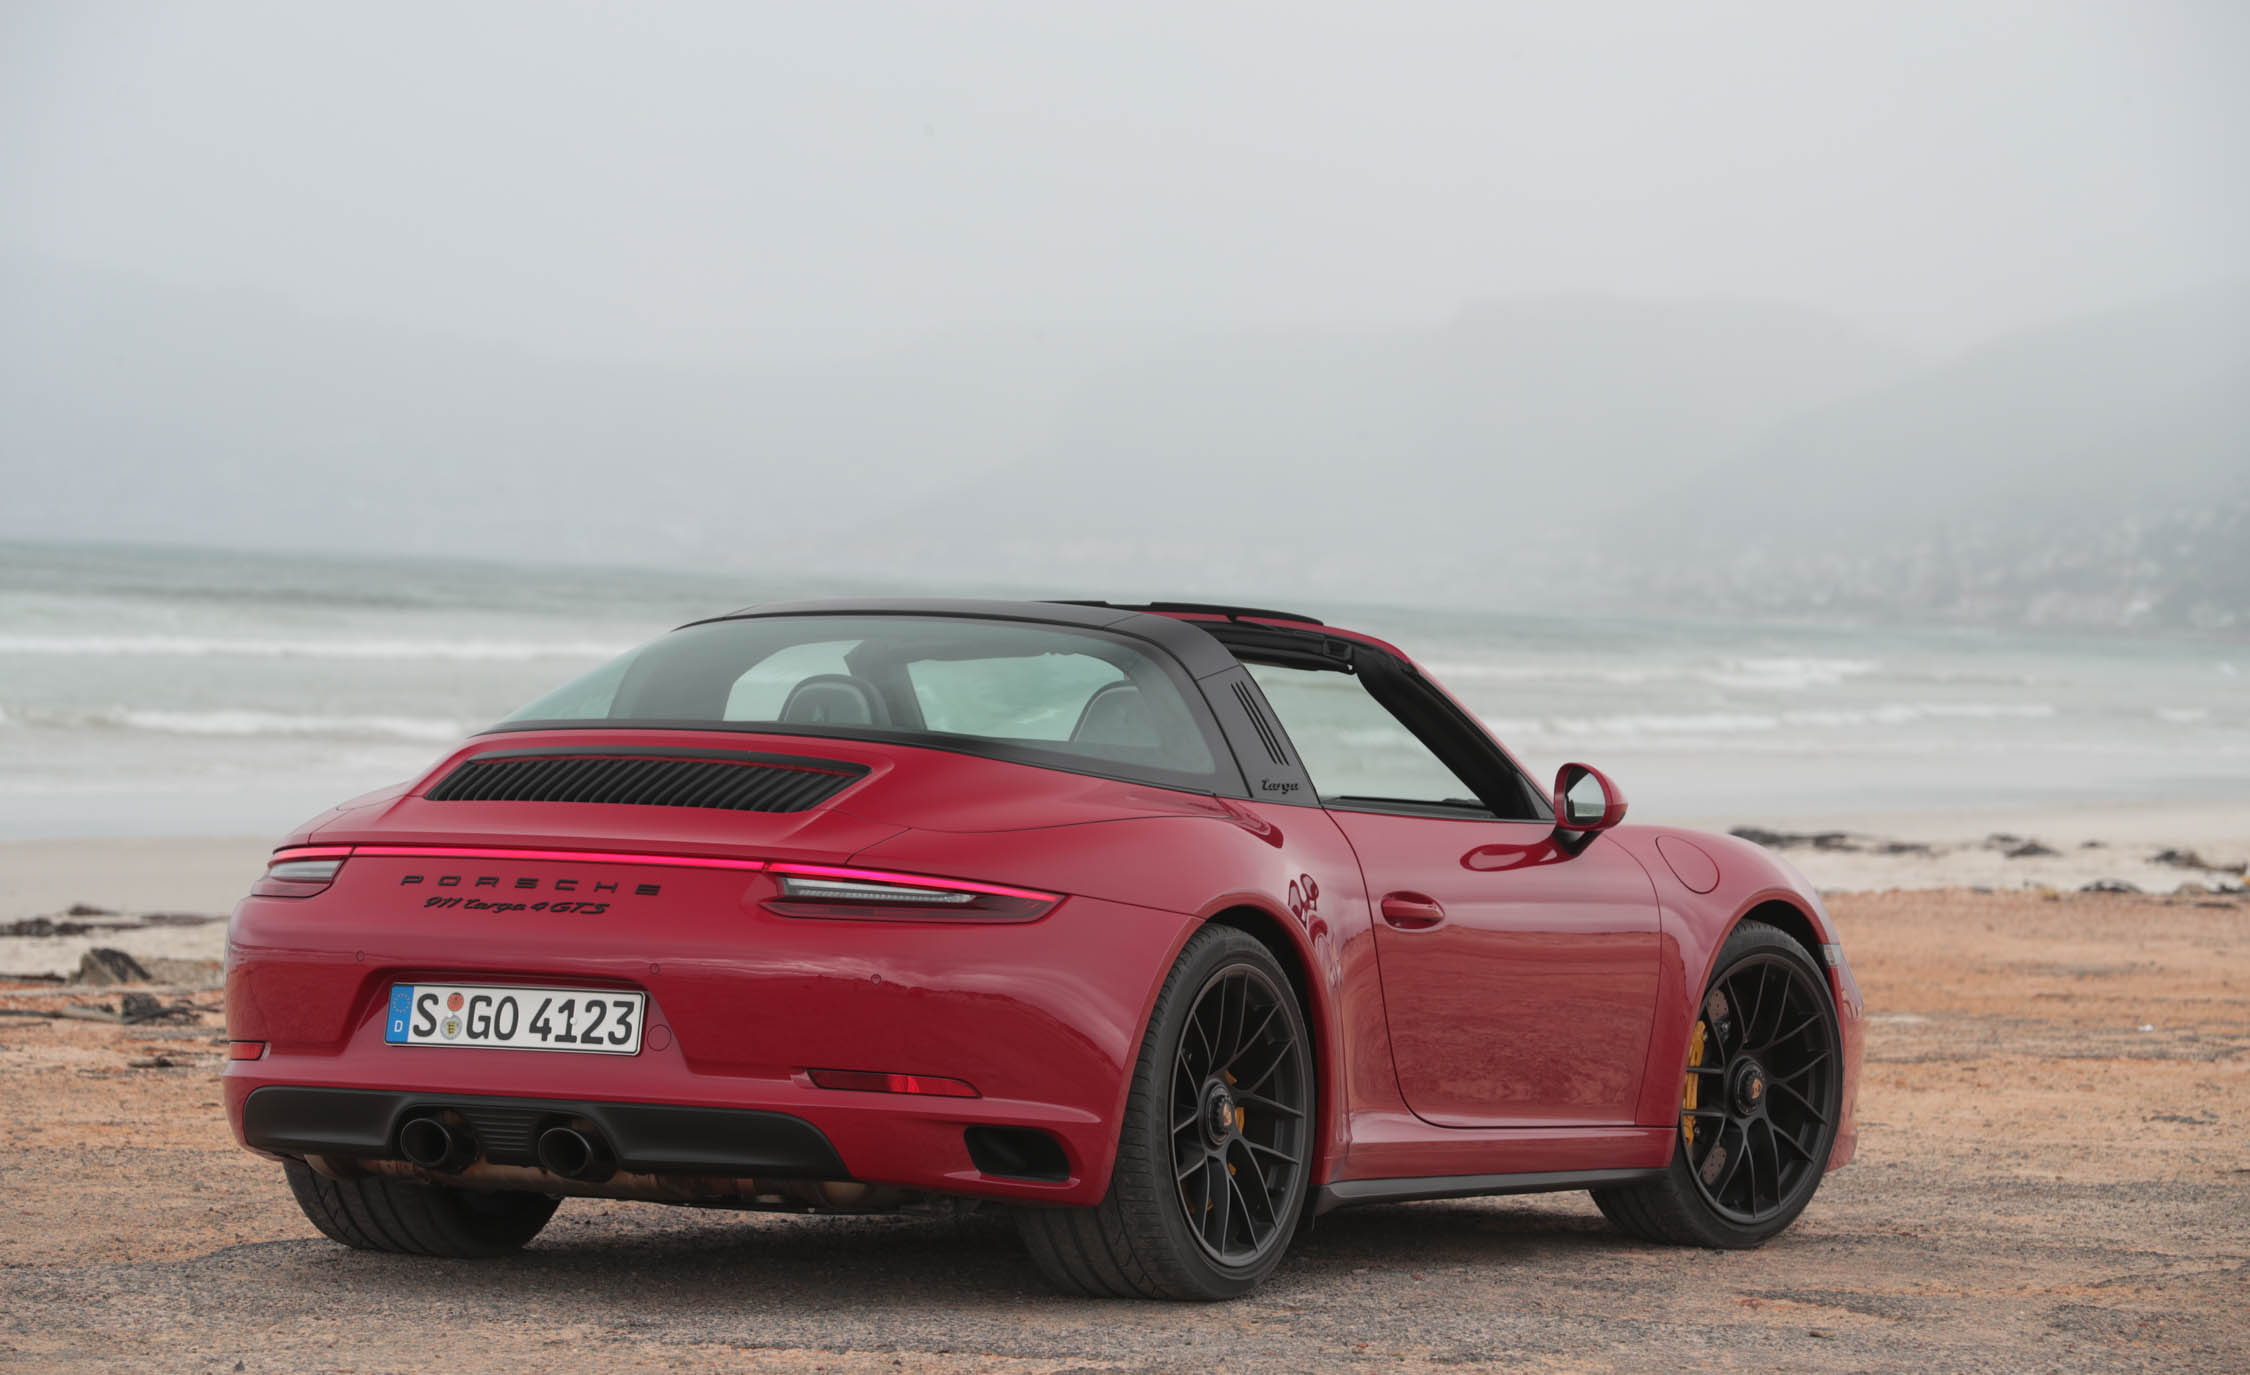 2017 Porsche 911 Targa 4 GTS Red Exterior Rear And Side (Photo 77 of 97)